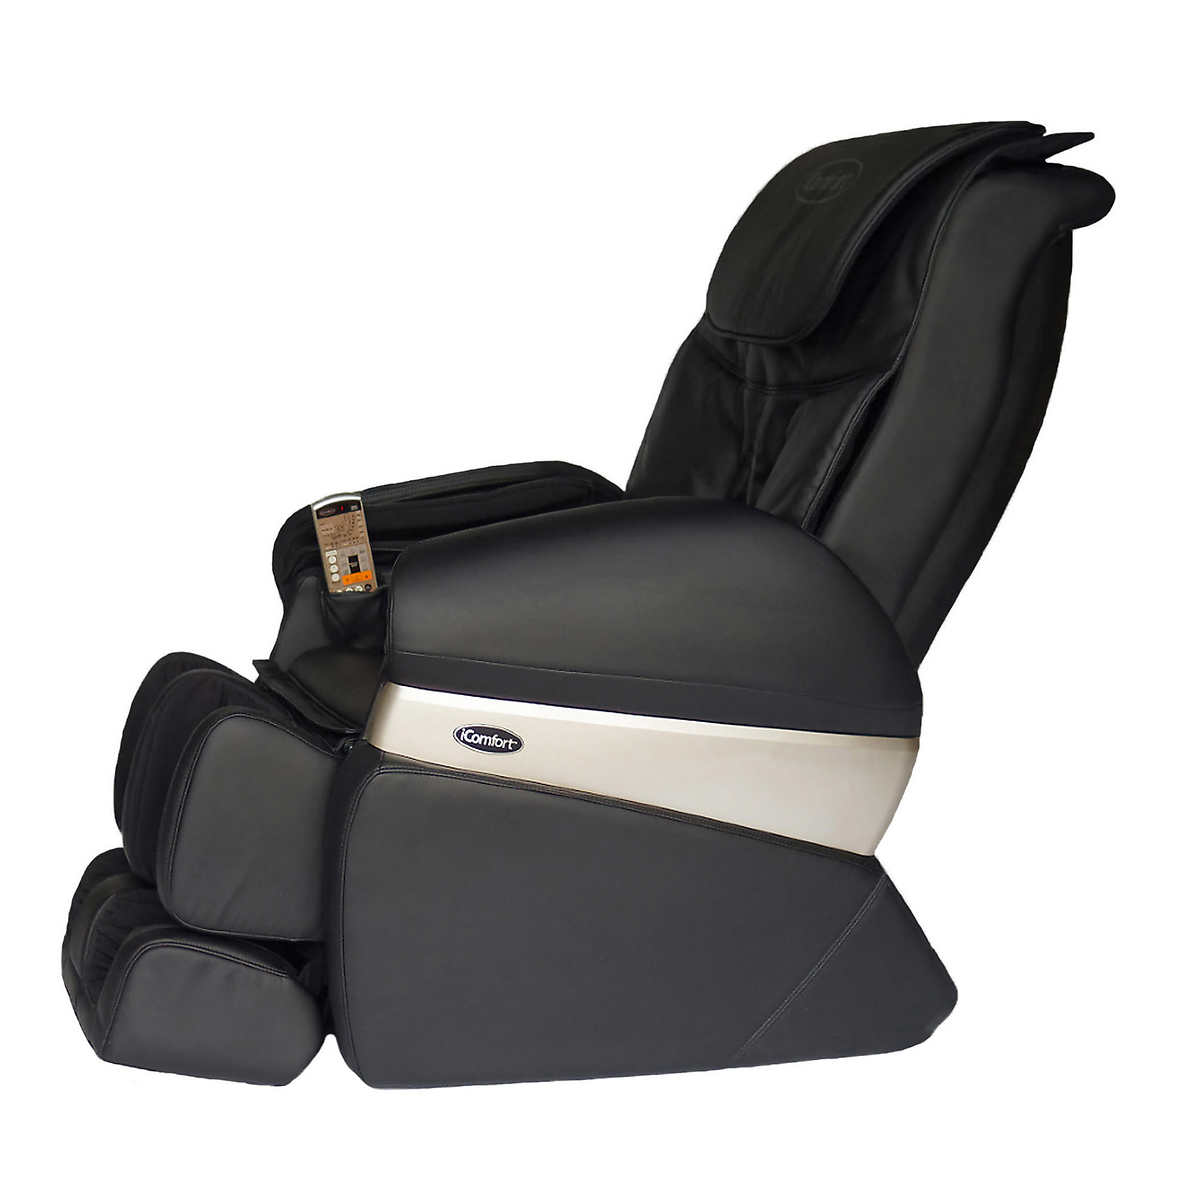 cozzia feel watch shiatsu youtube massage chair good series